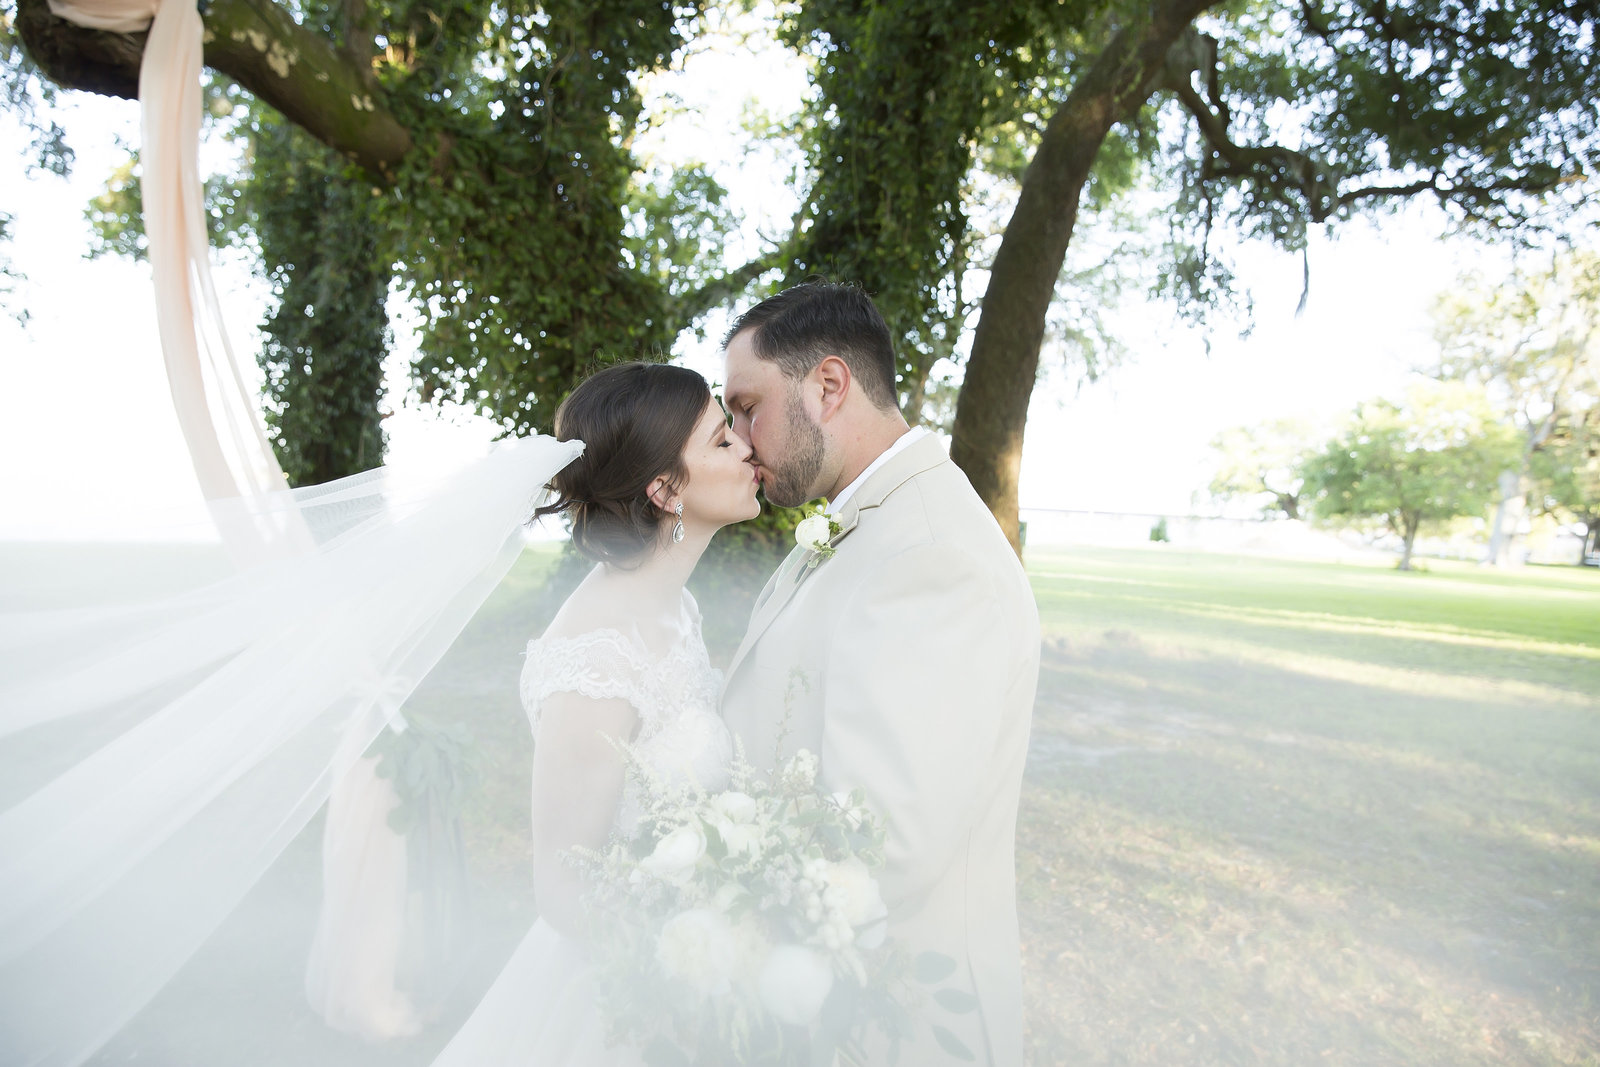 Bride and Groom share a kiss on their wedding day at the Old Place in Gautier